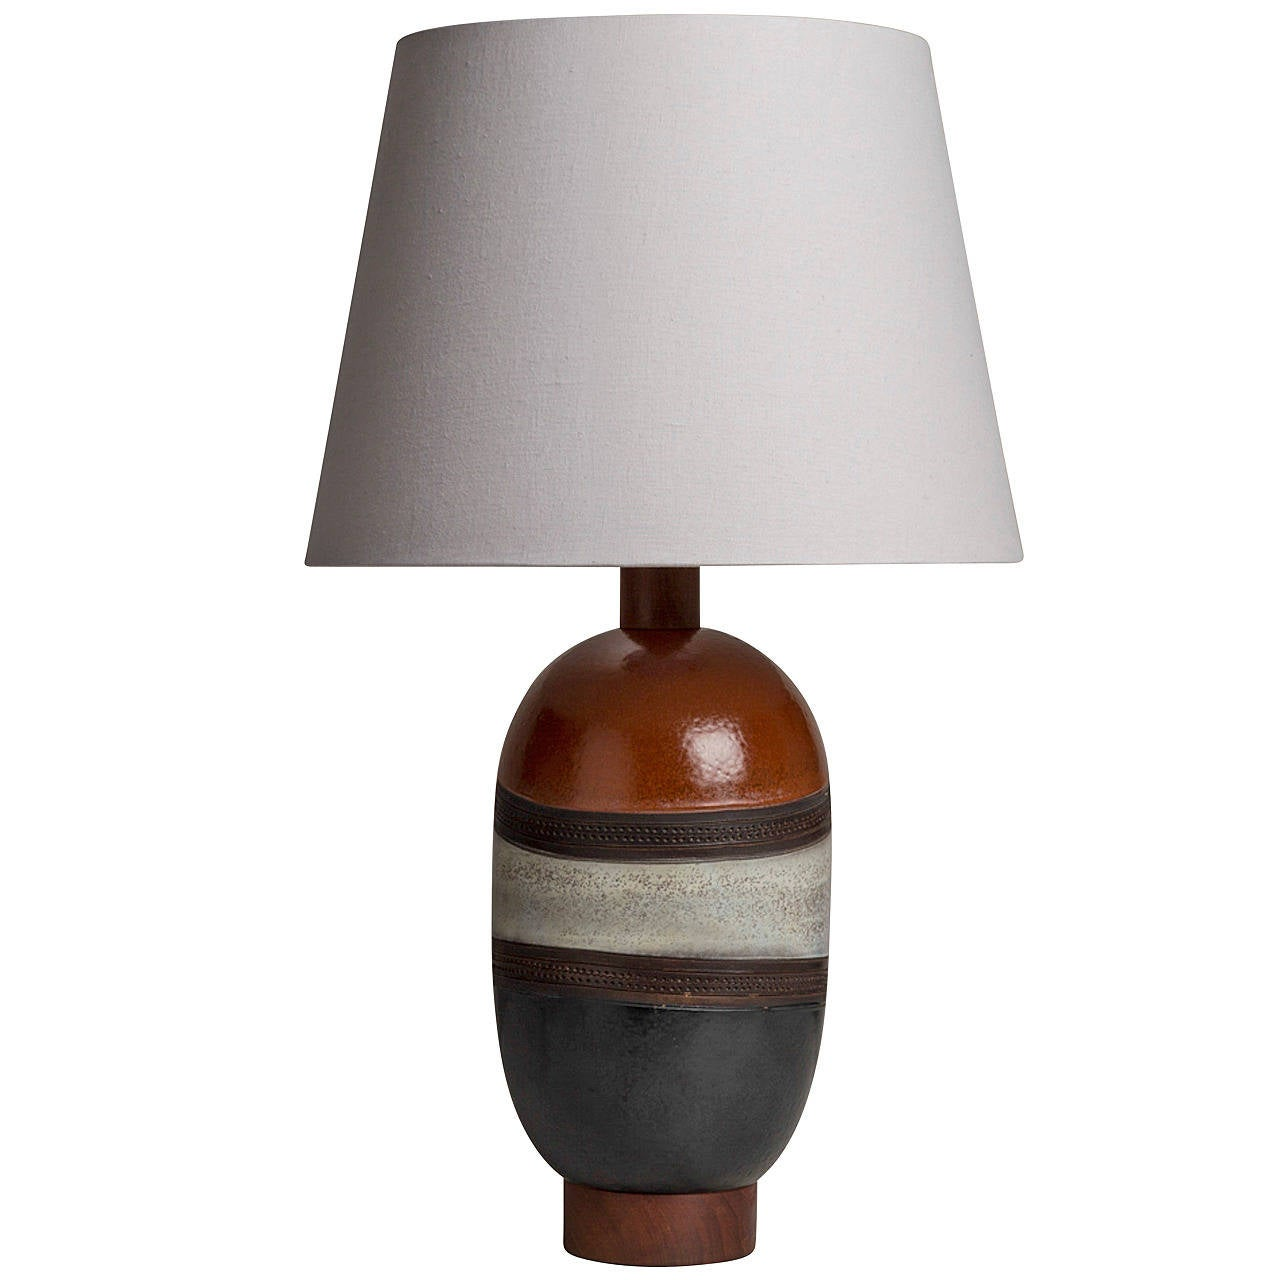 Single Italian Glazed Ceramic Table Lamp, 1970s